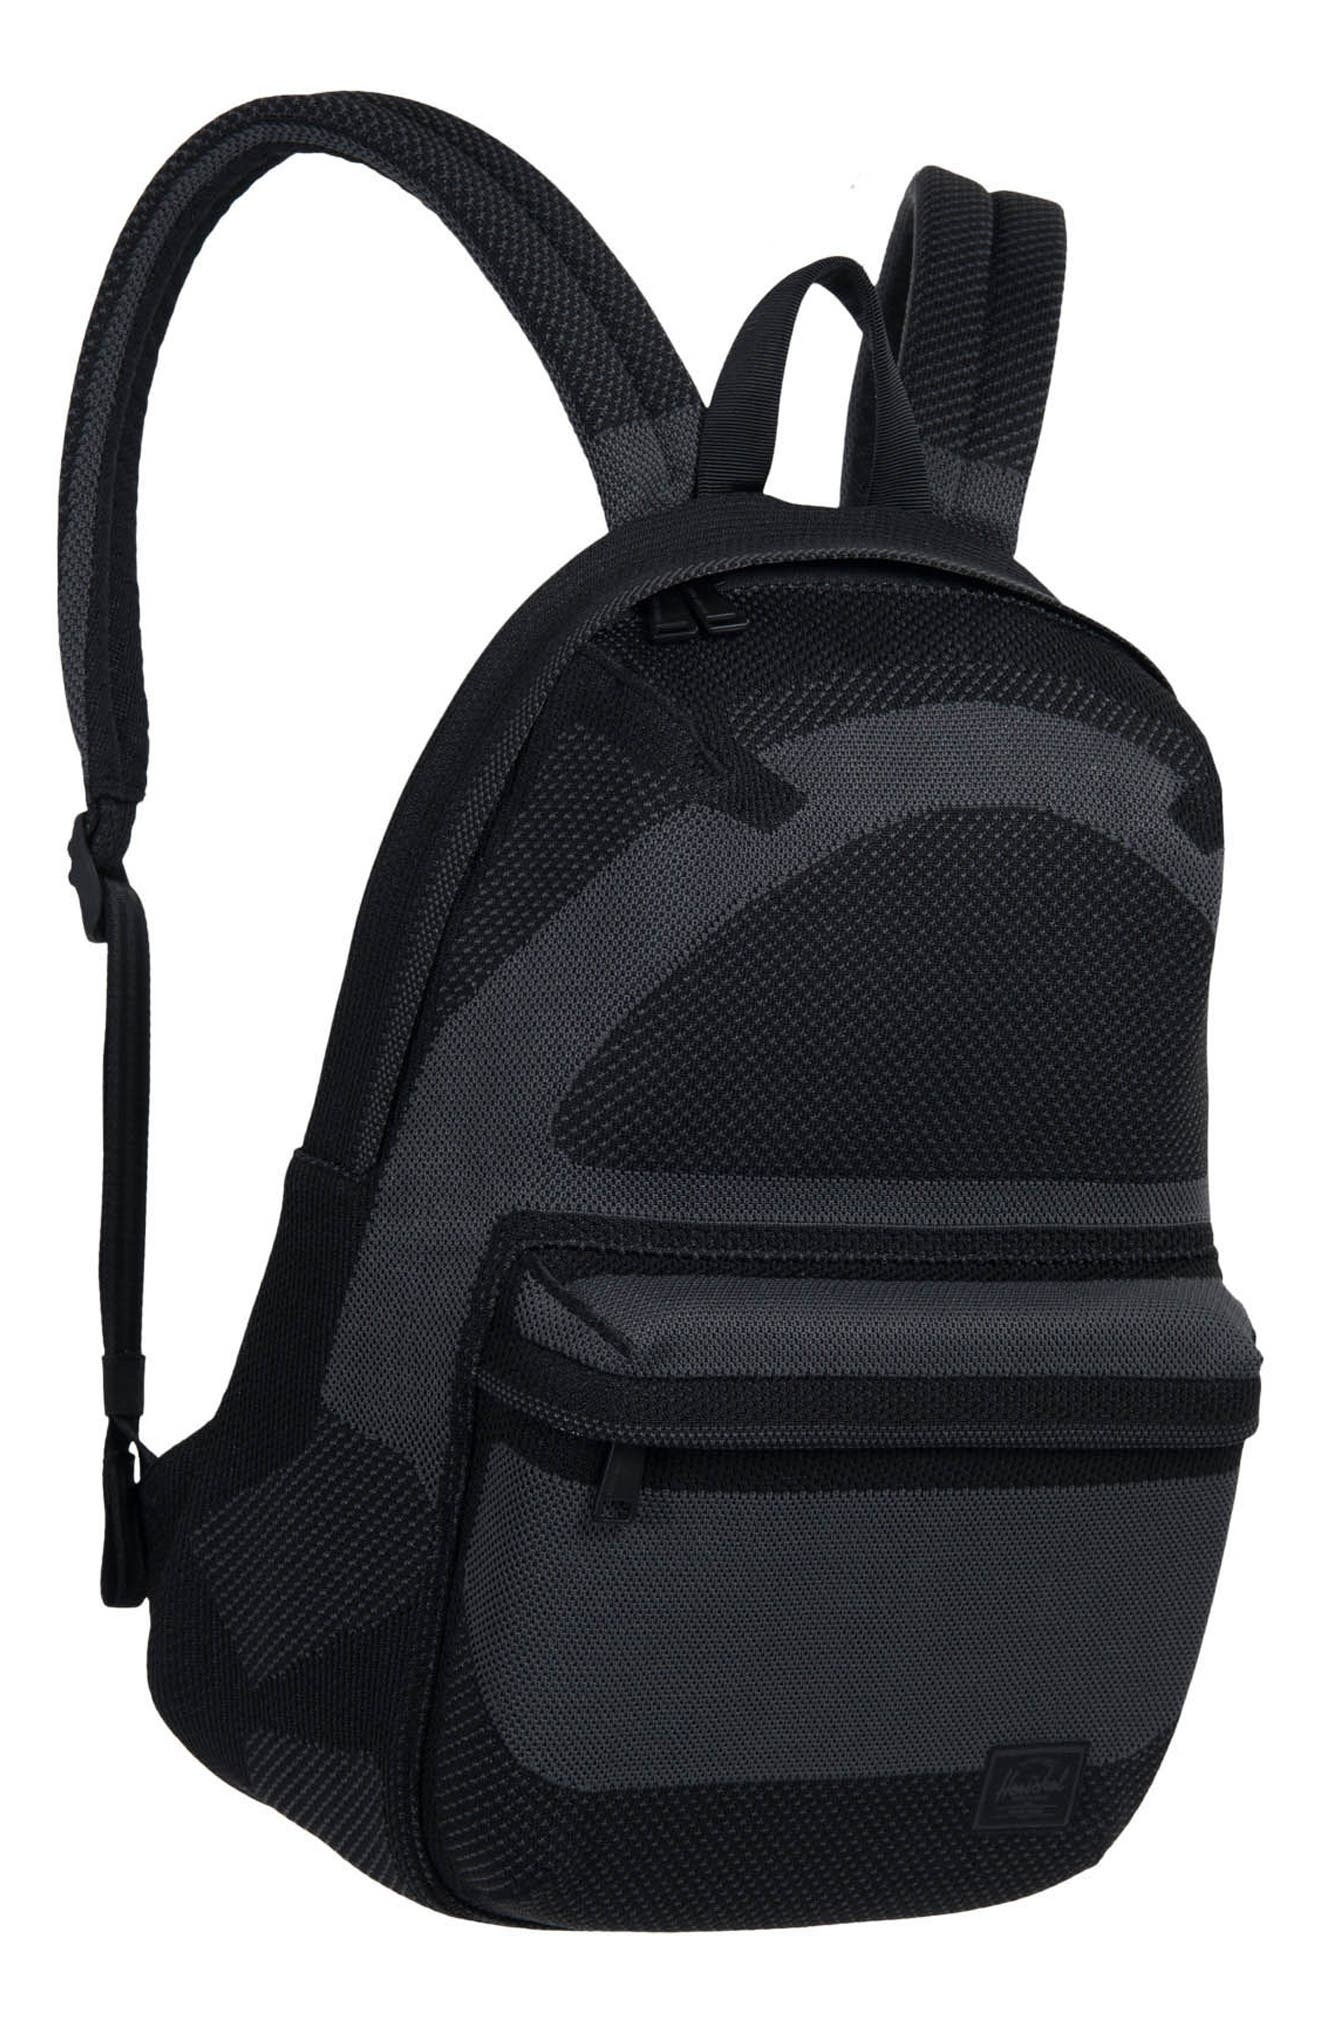 Apex Lawson Backpack,                         Main,                         color,